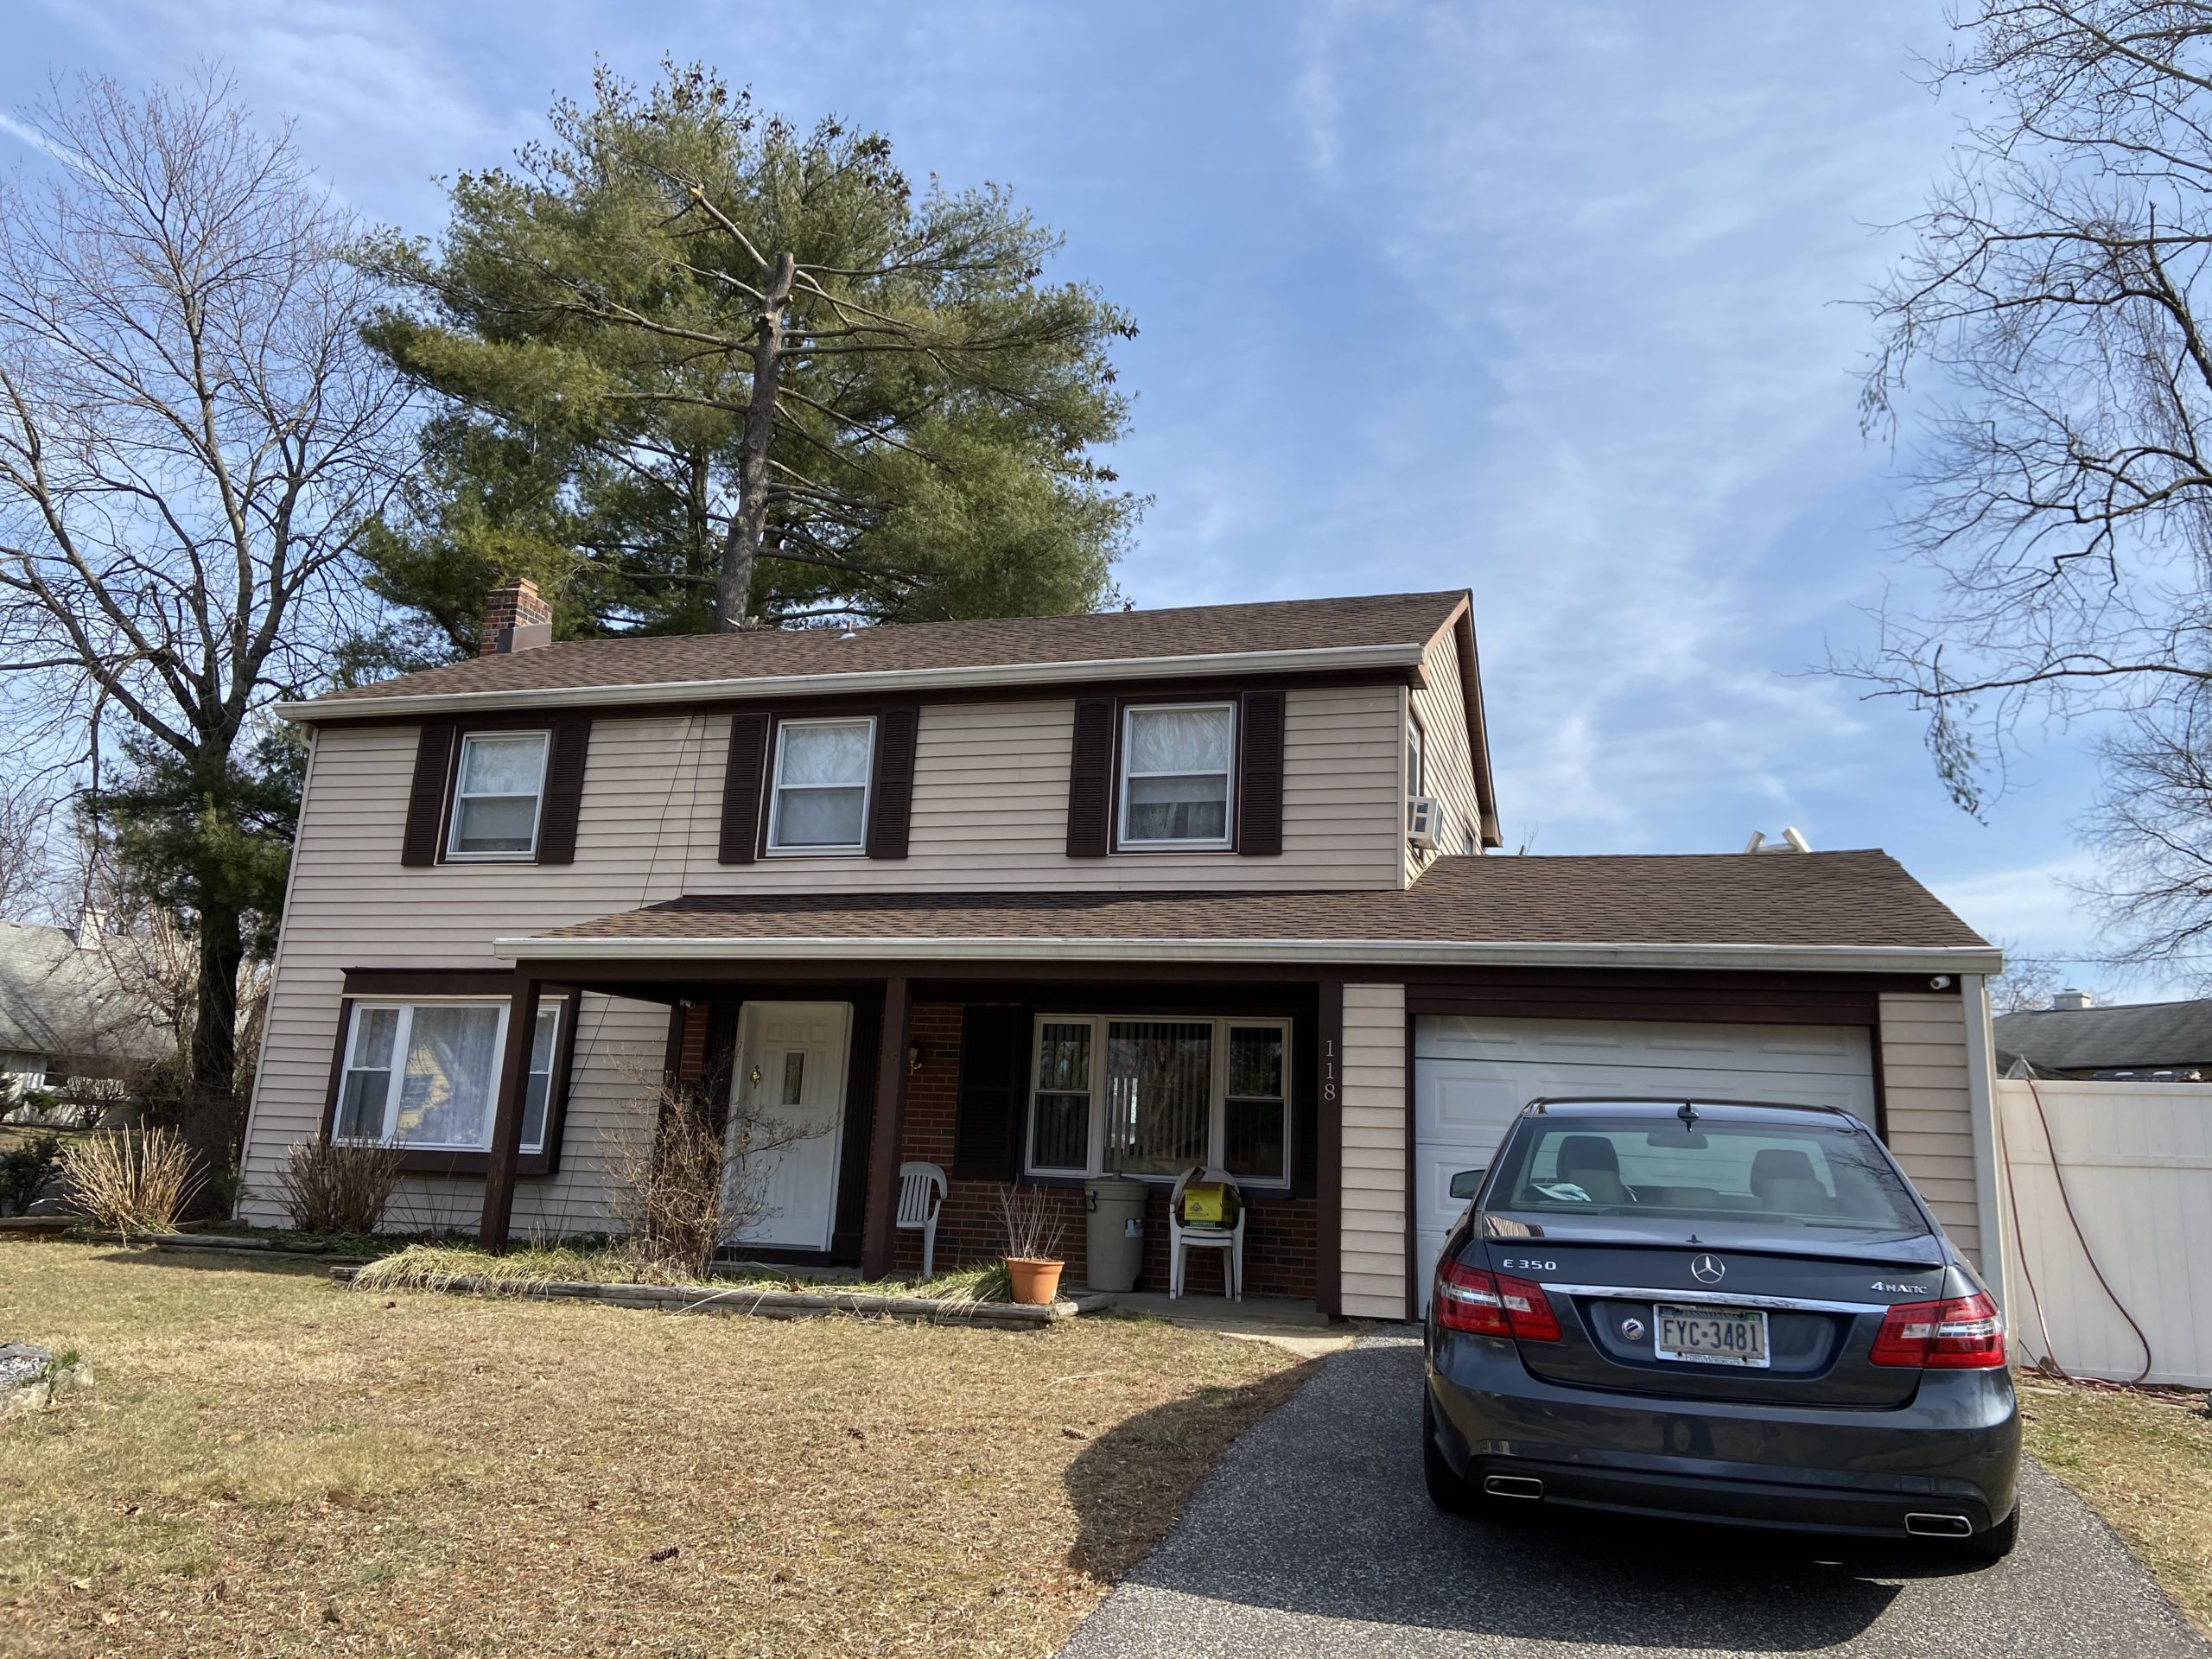 DDS Completes Residential Roofing Job in Willingboro, New Jersey